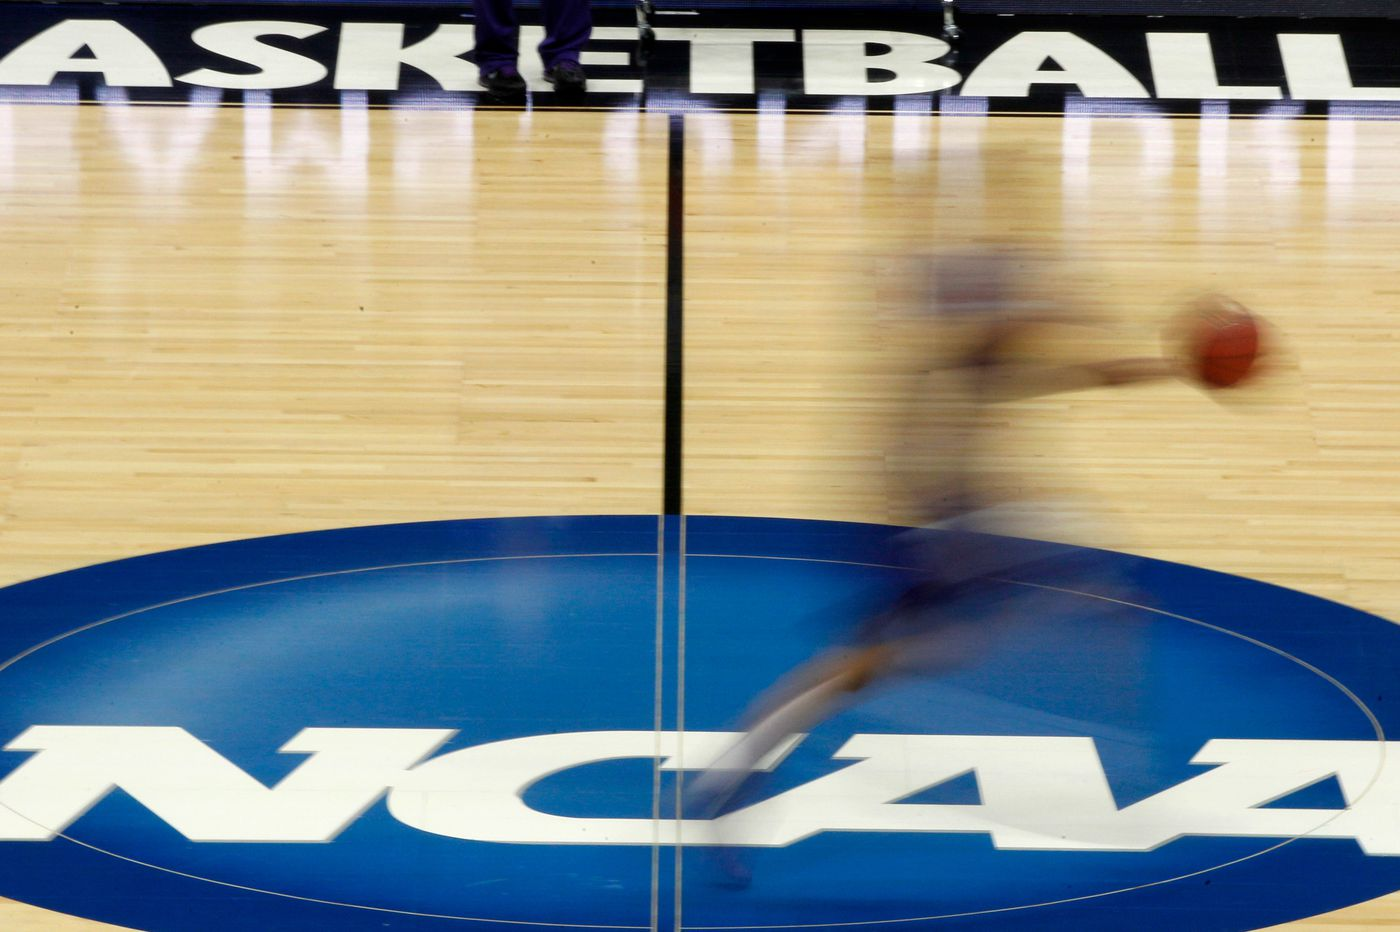 The NCAA says student athletes can be compensated, but what exactly does that mean?